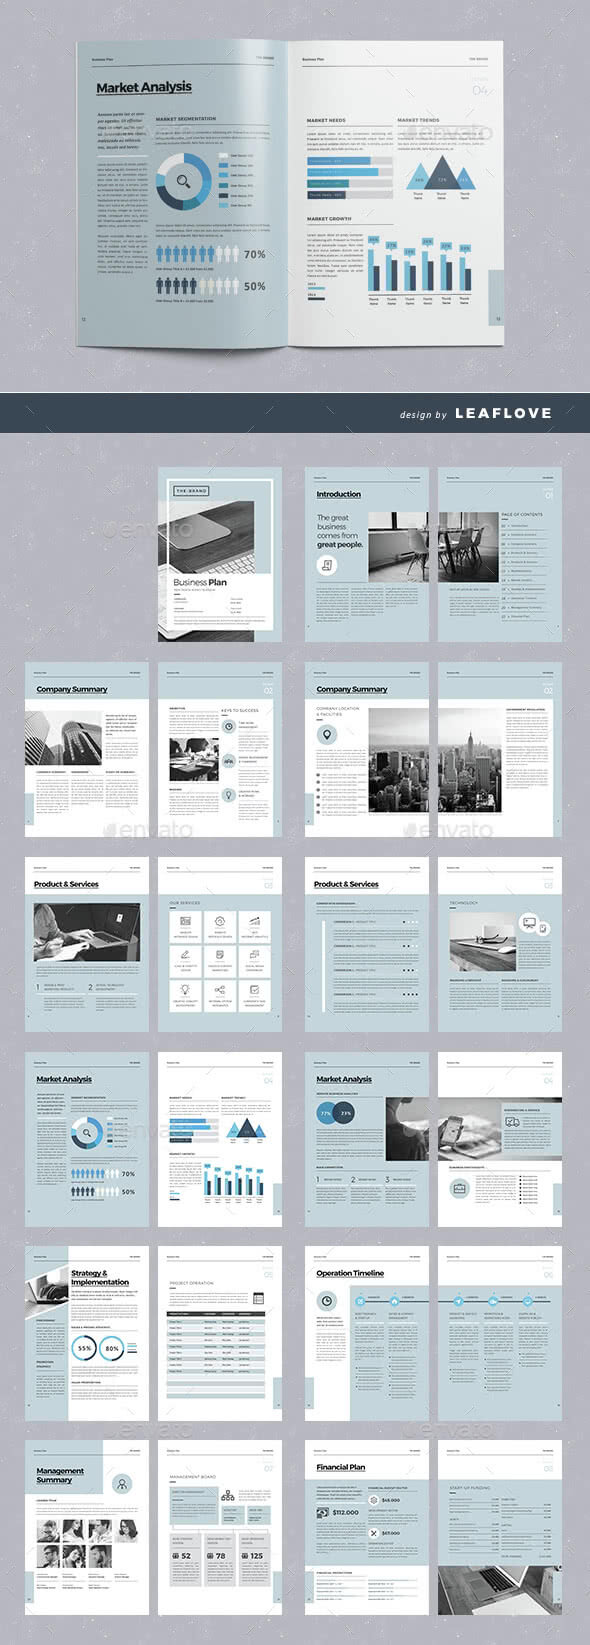 75 Fresh Indesign Templates And Where To Find More Pertaining To Free Indesign Report Templates